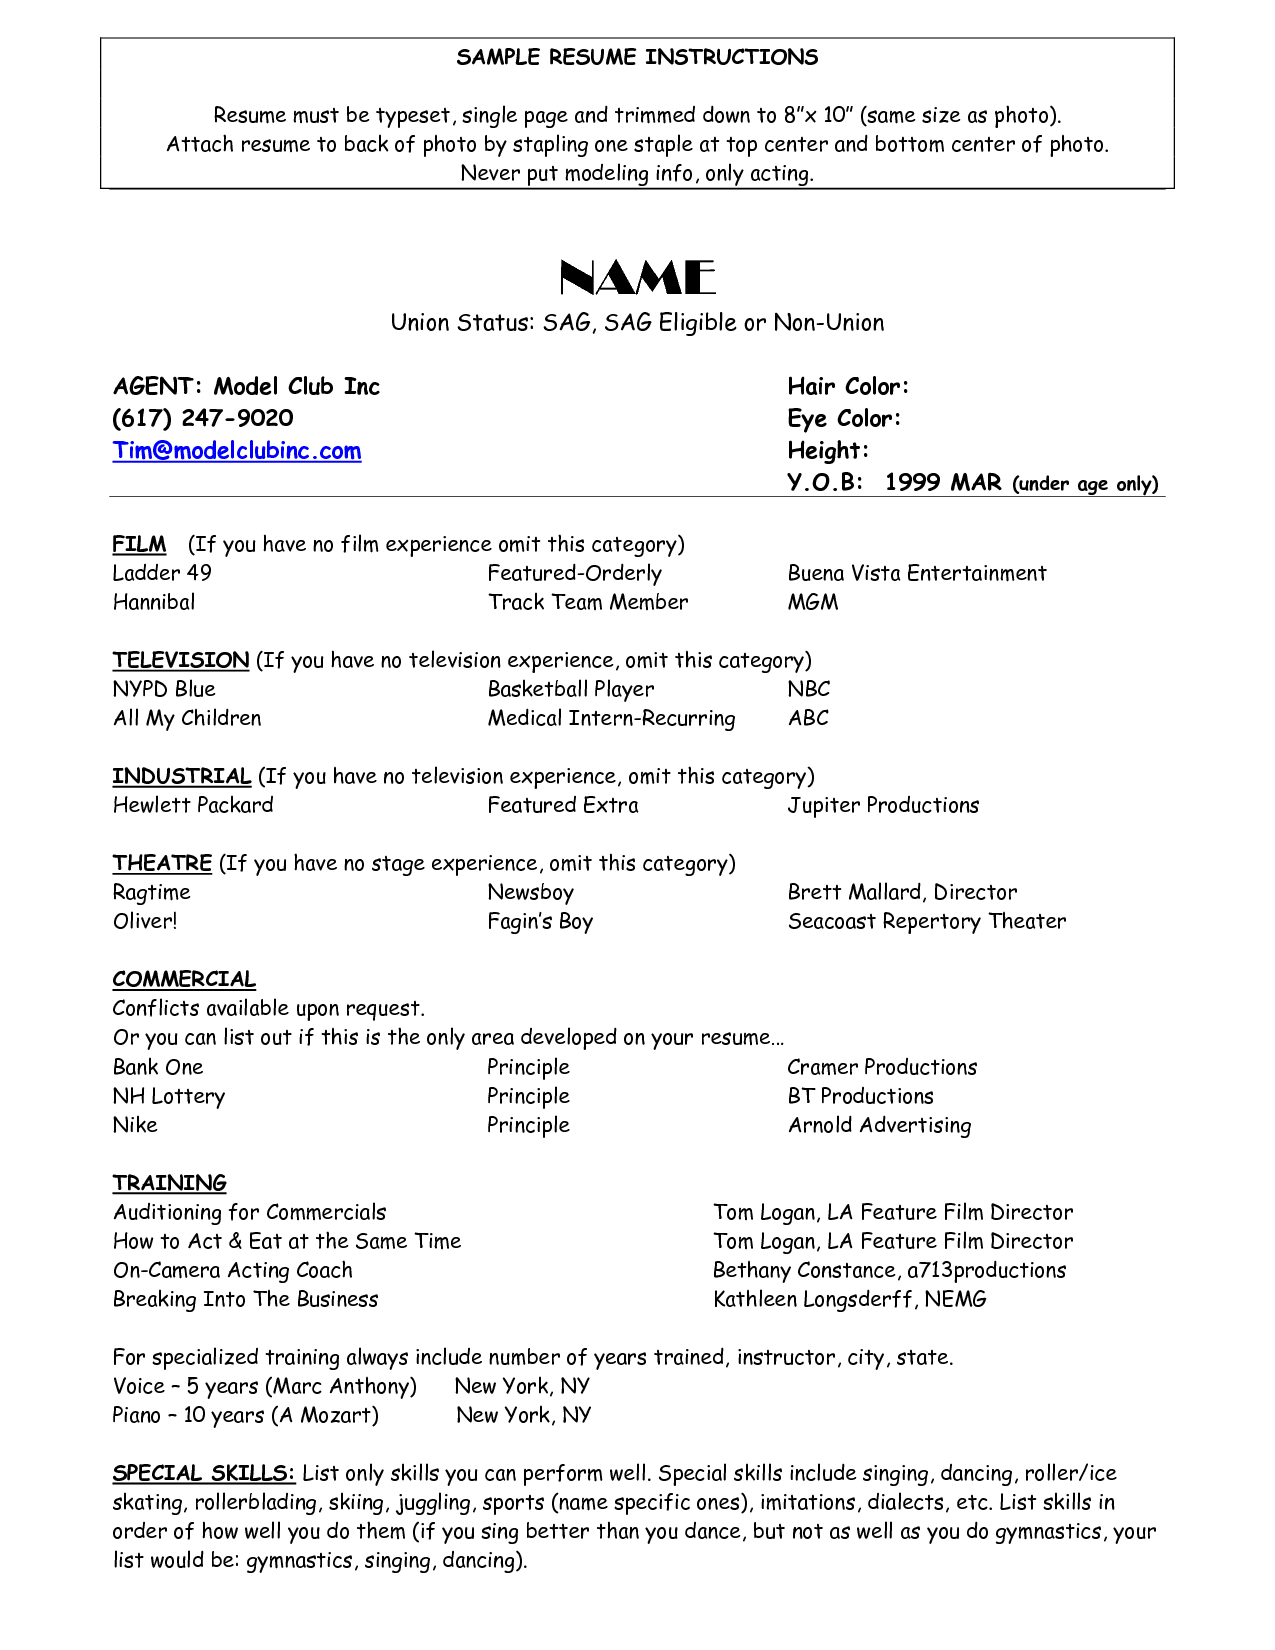 Sample Acting Resume Resume For Child Actor  Scope Of Work Template  Special Needs